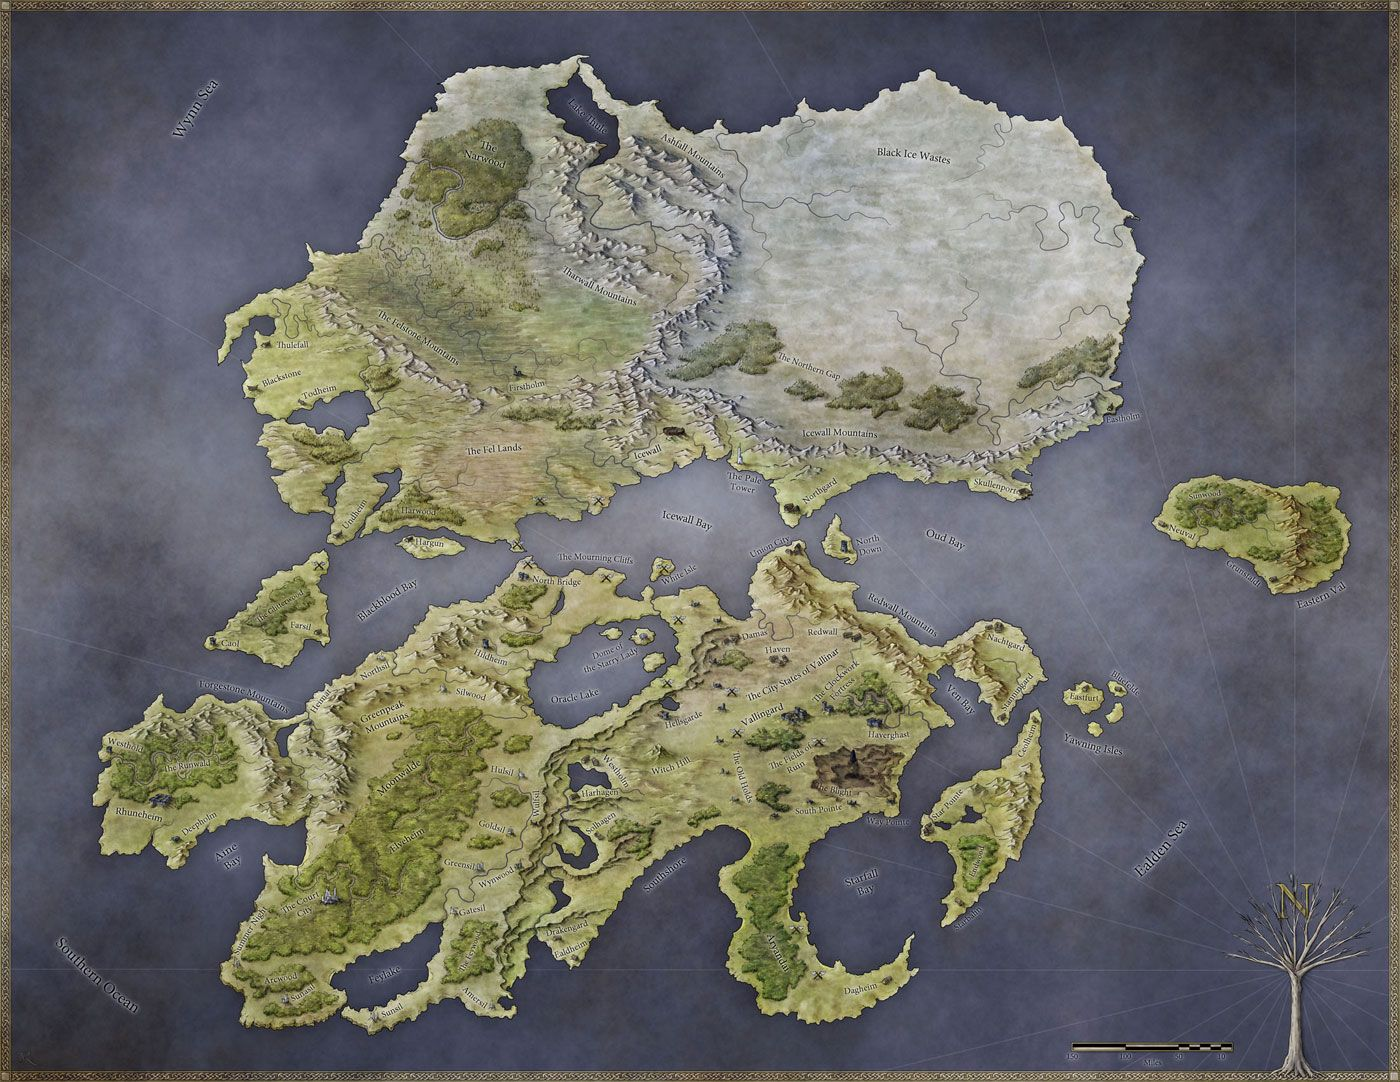 Fantasy maps google search creative cartography pinterest fantasy maps google search gumiabroncs Images